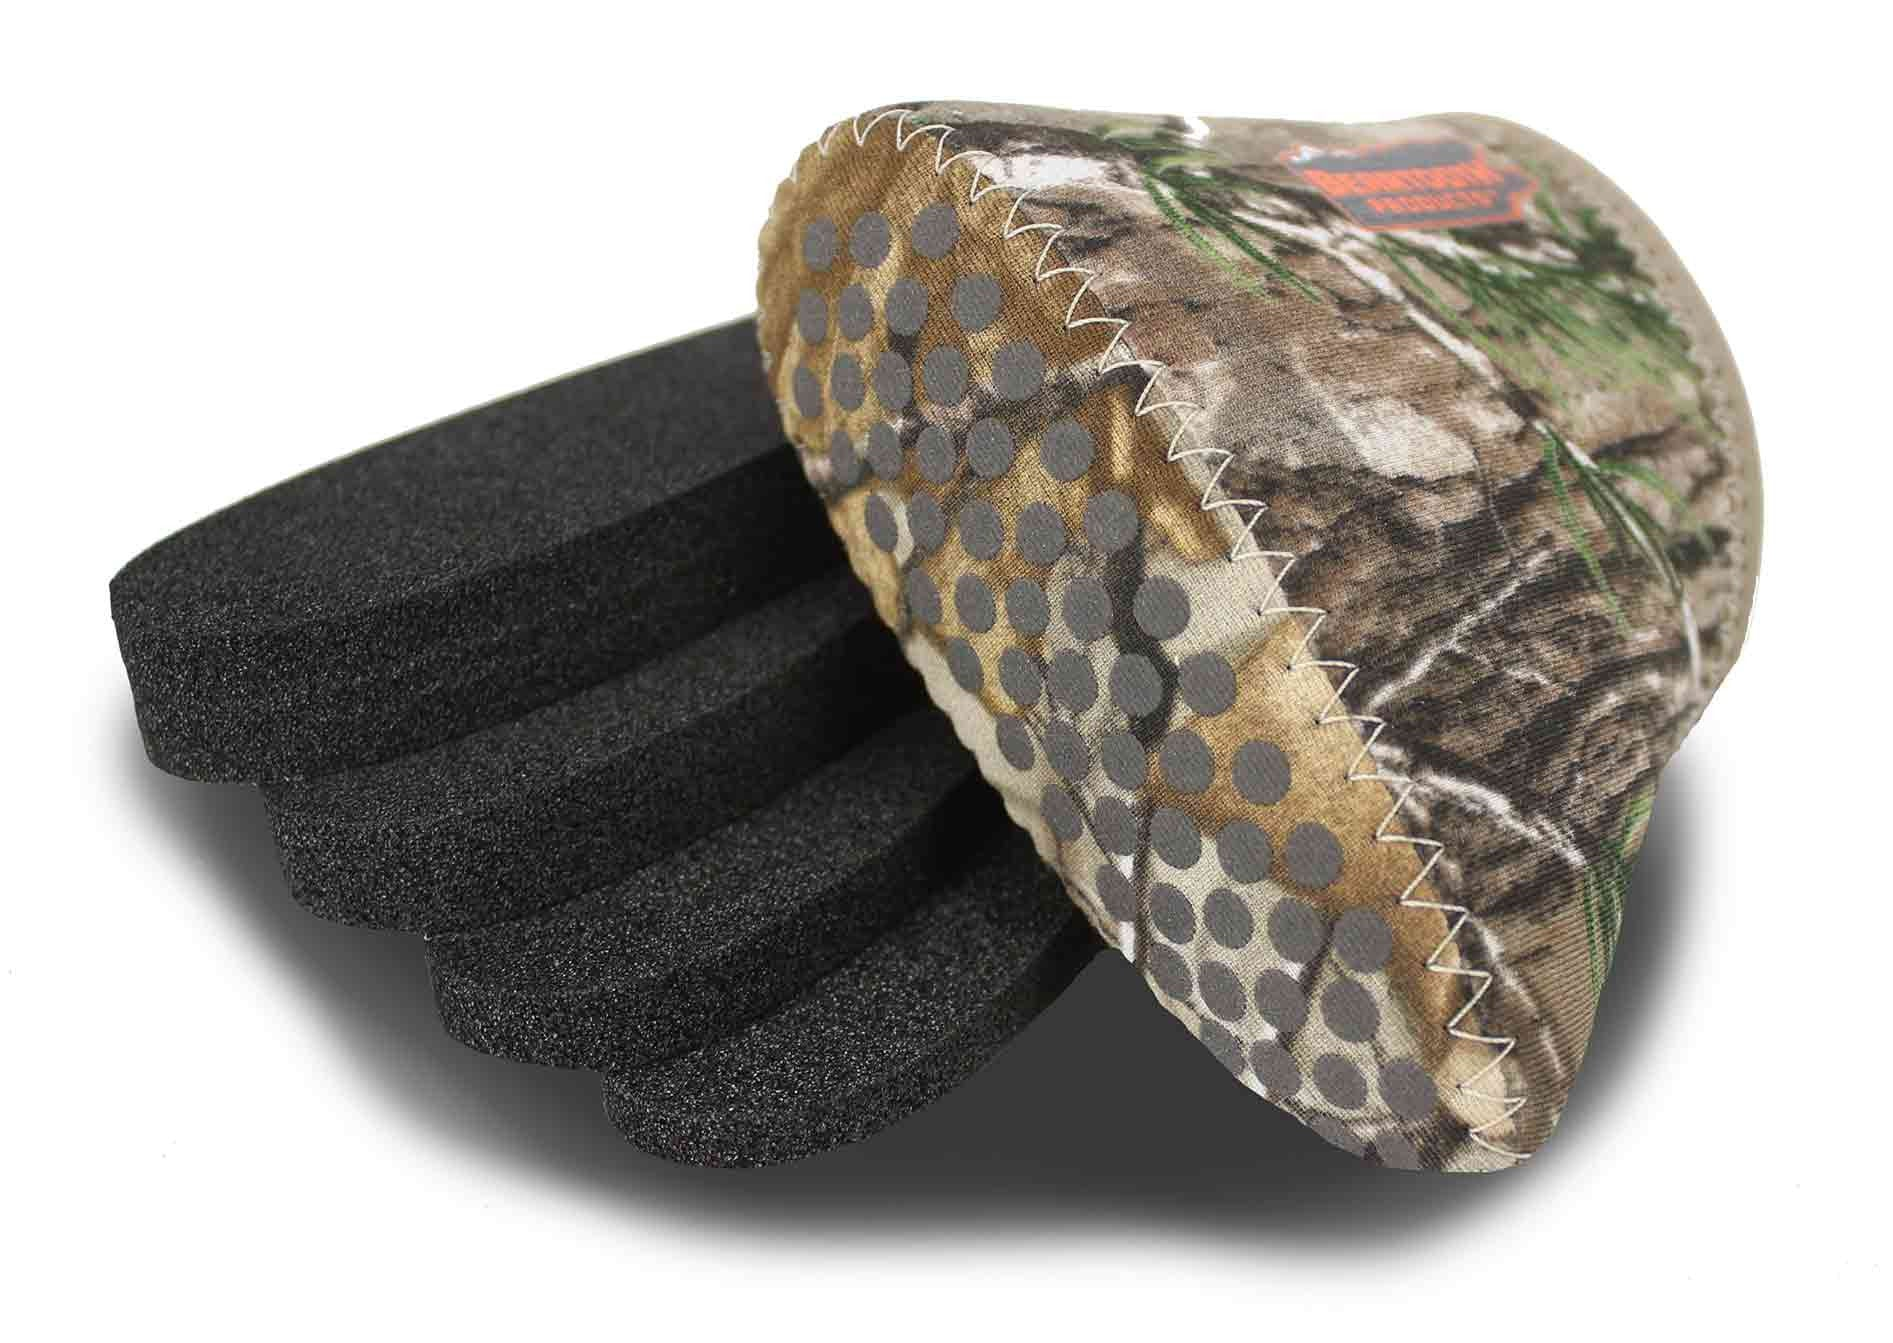 RECOIL PAD KIT 2.0 in Realtree Xtra®